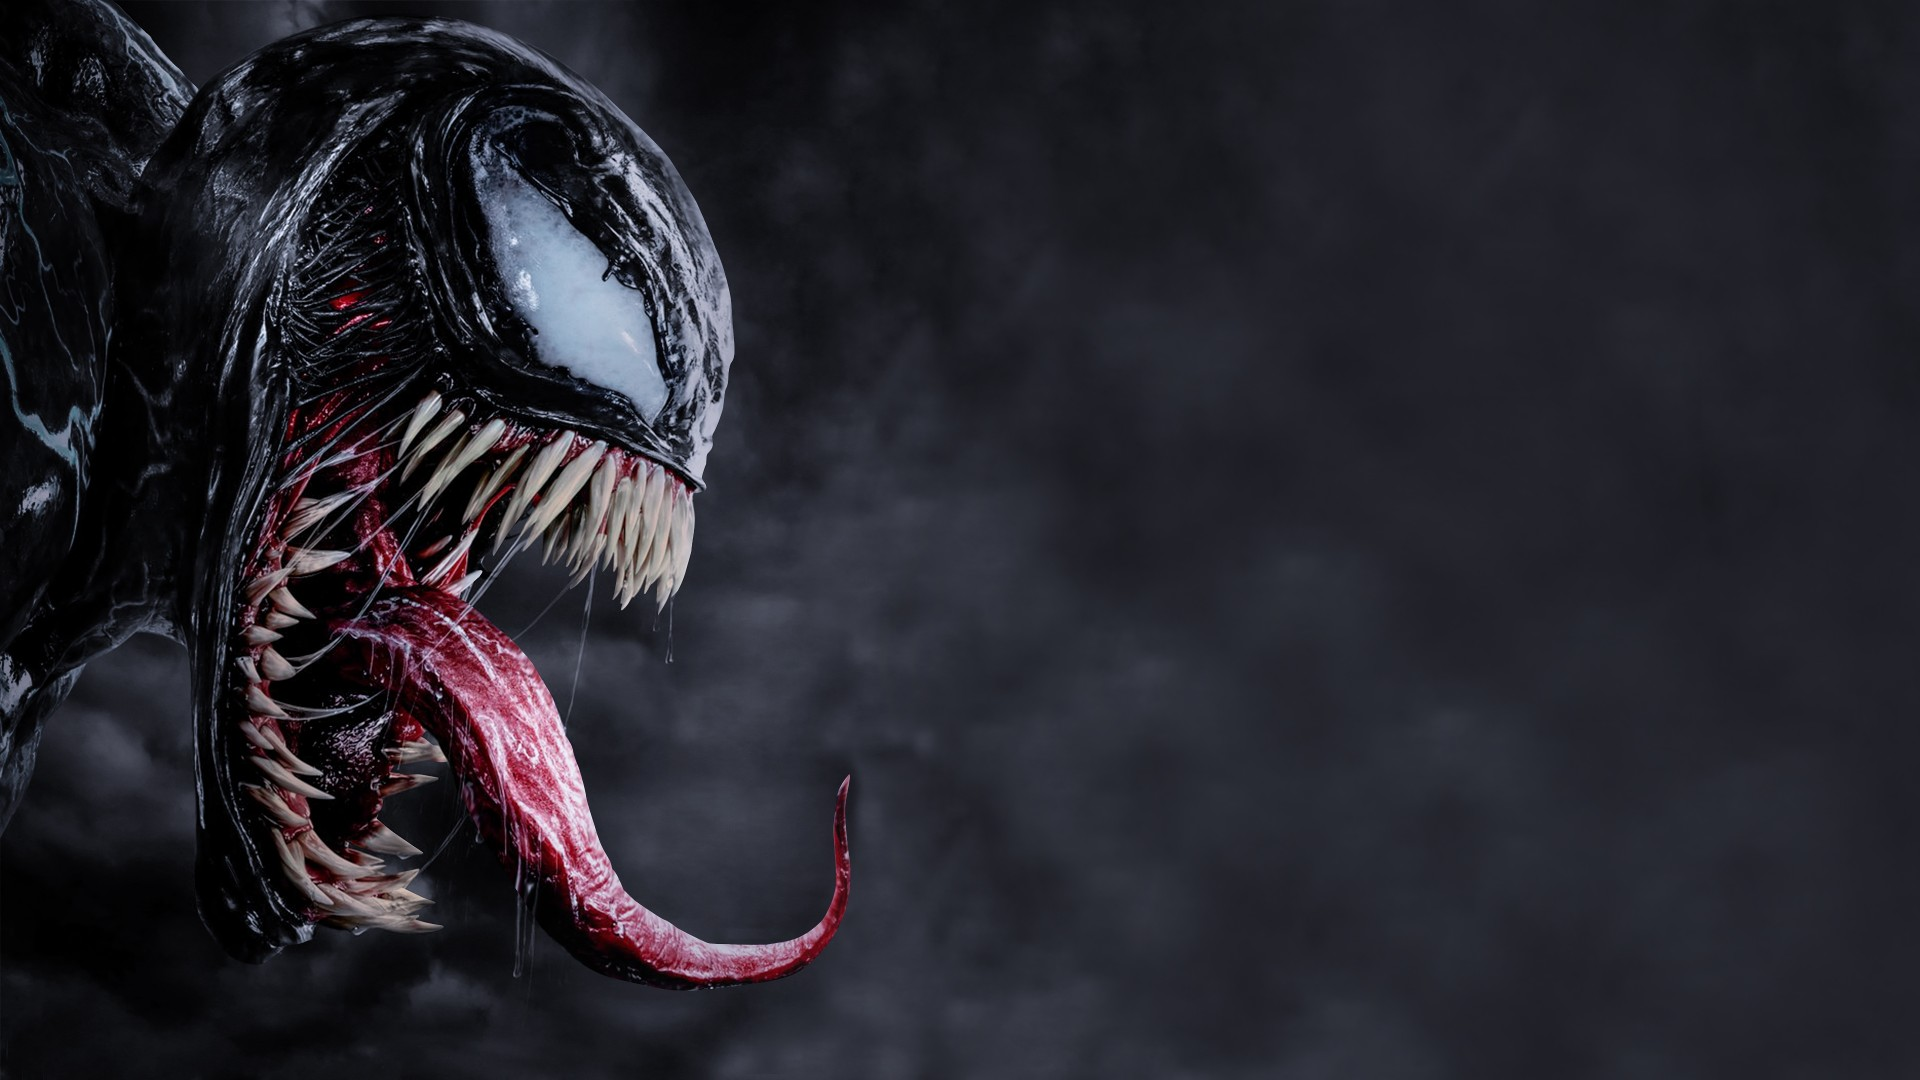 1920x1080 Wallpaper Venom Hd Wallpaper For Desktop Background